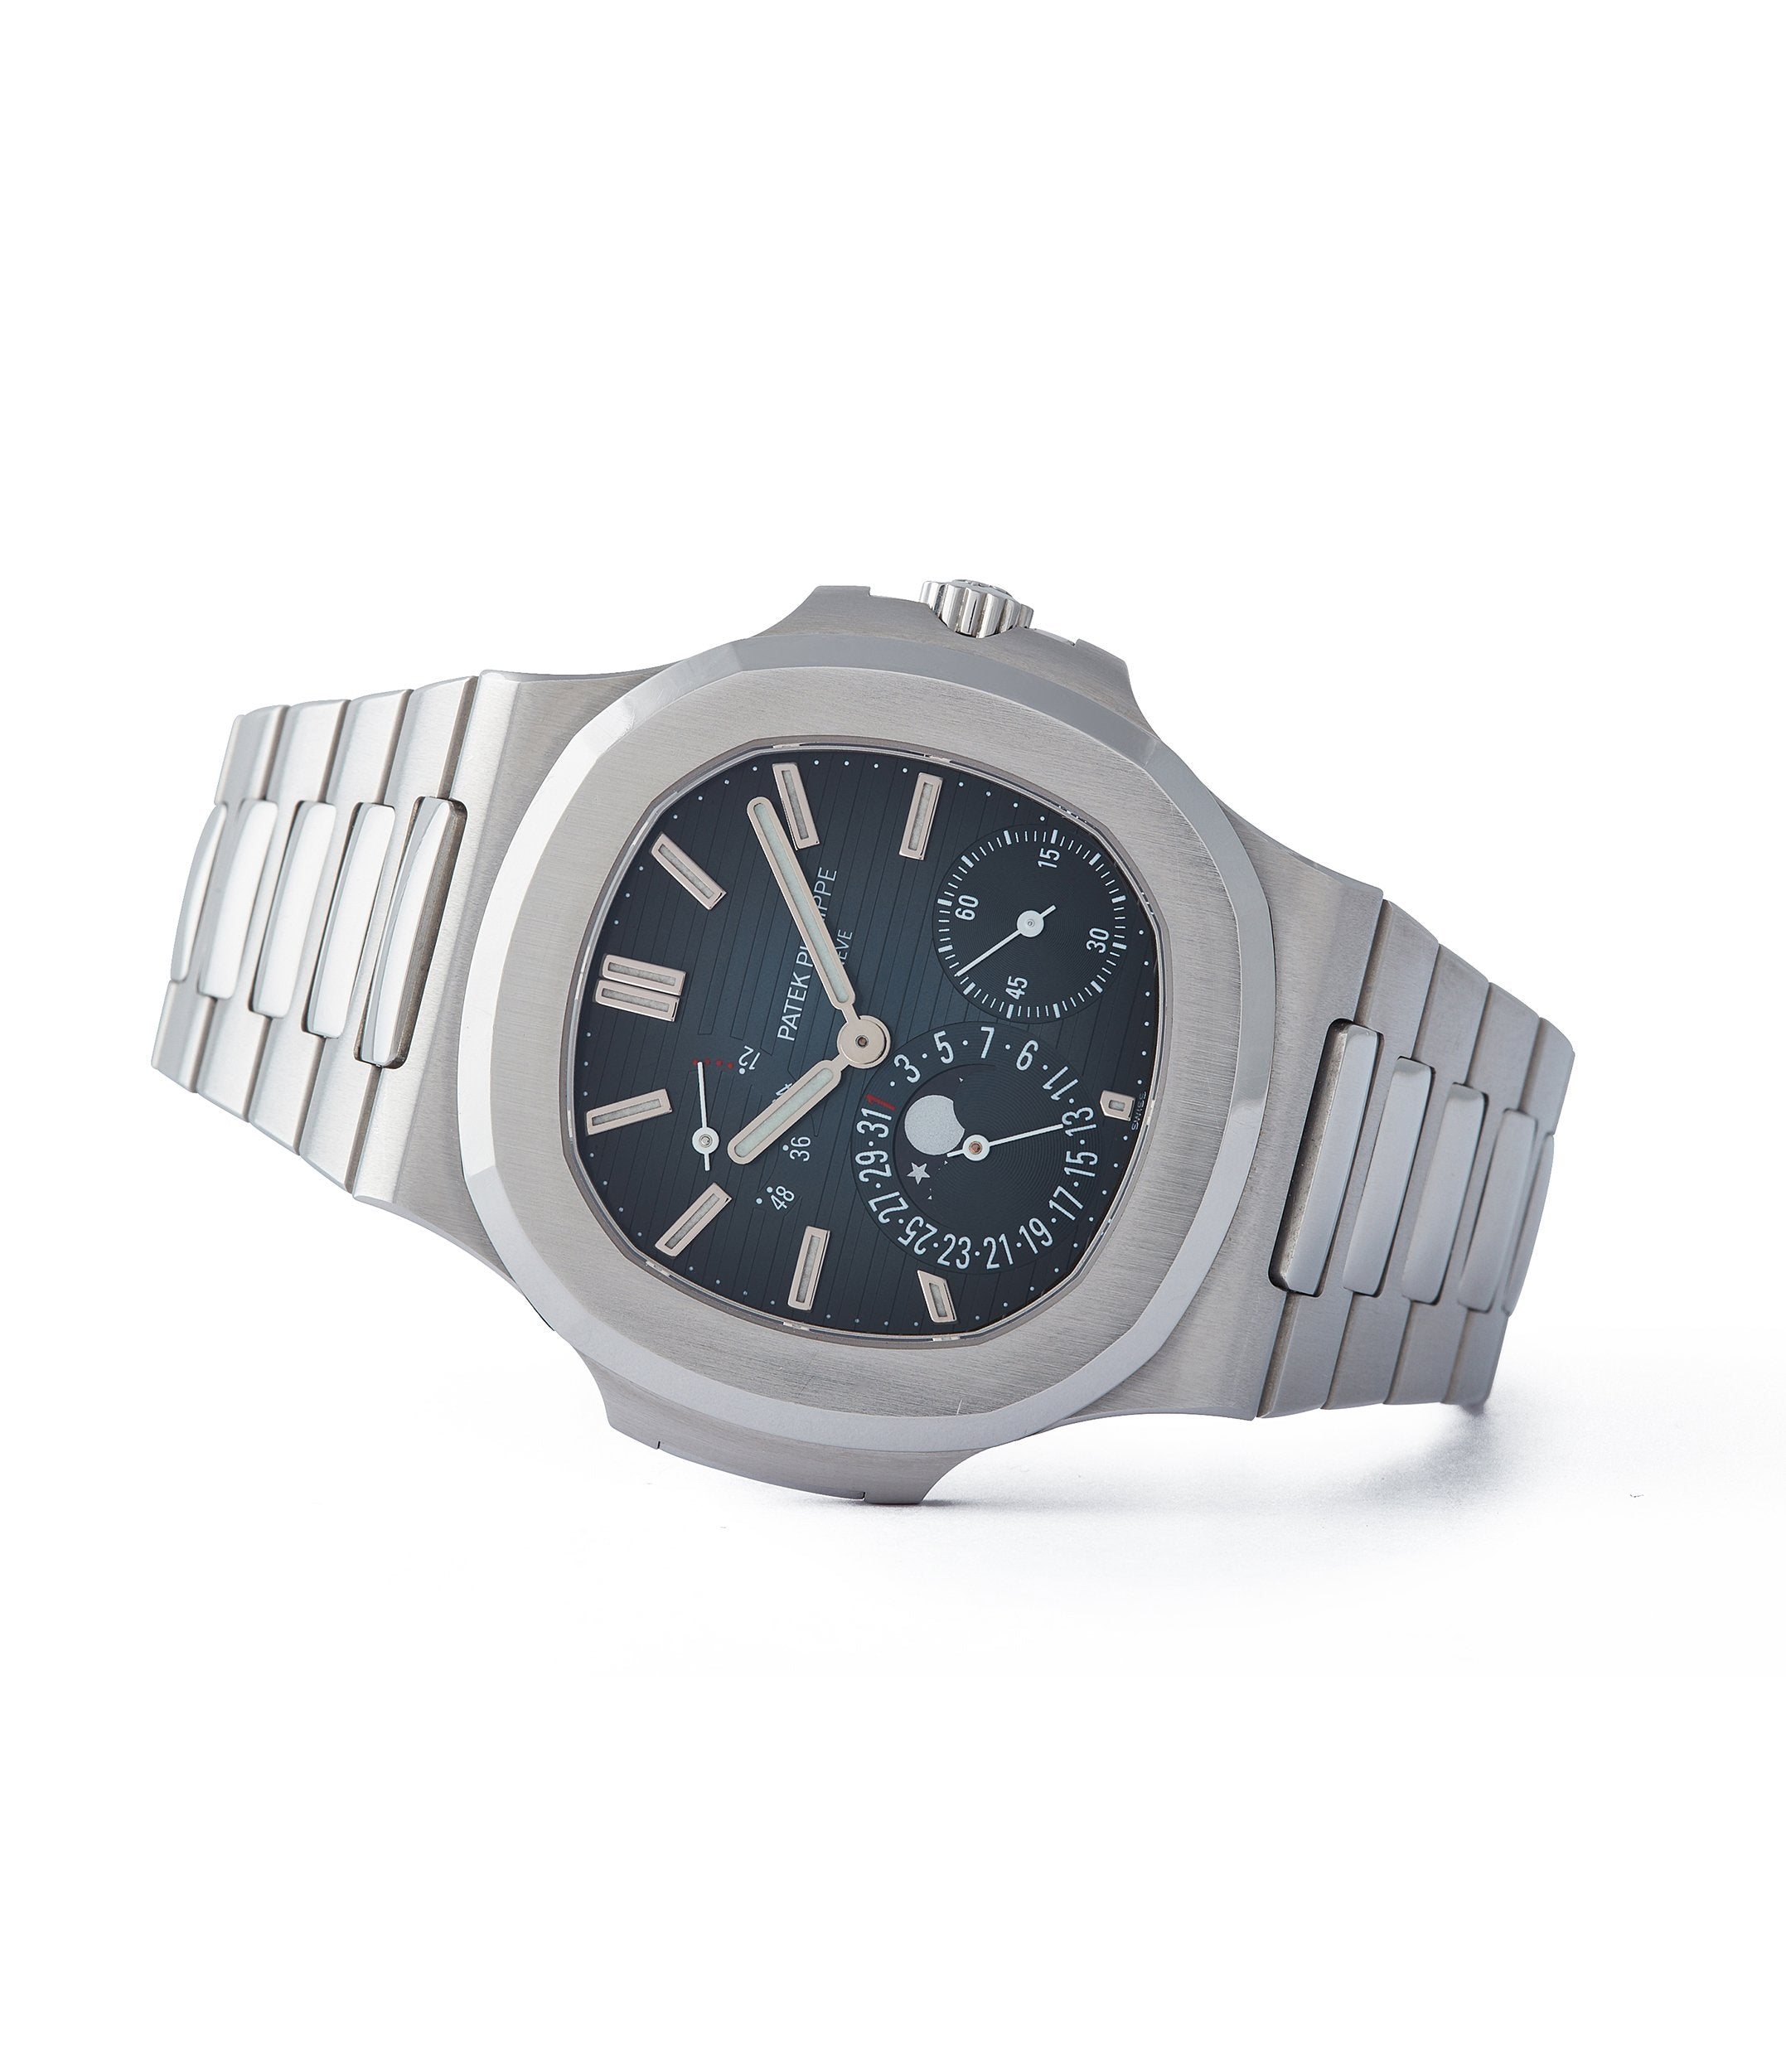 side-shot rare Patek Philippe Nautilus 5712/1A-001 steel moon phase luxury sports watch for sale online A Collected Man London UK specialist rare watches